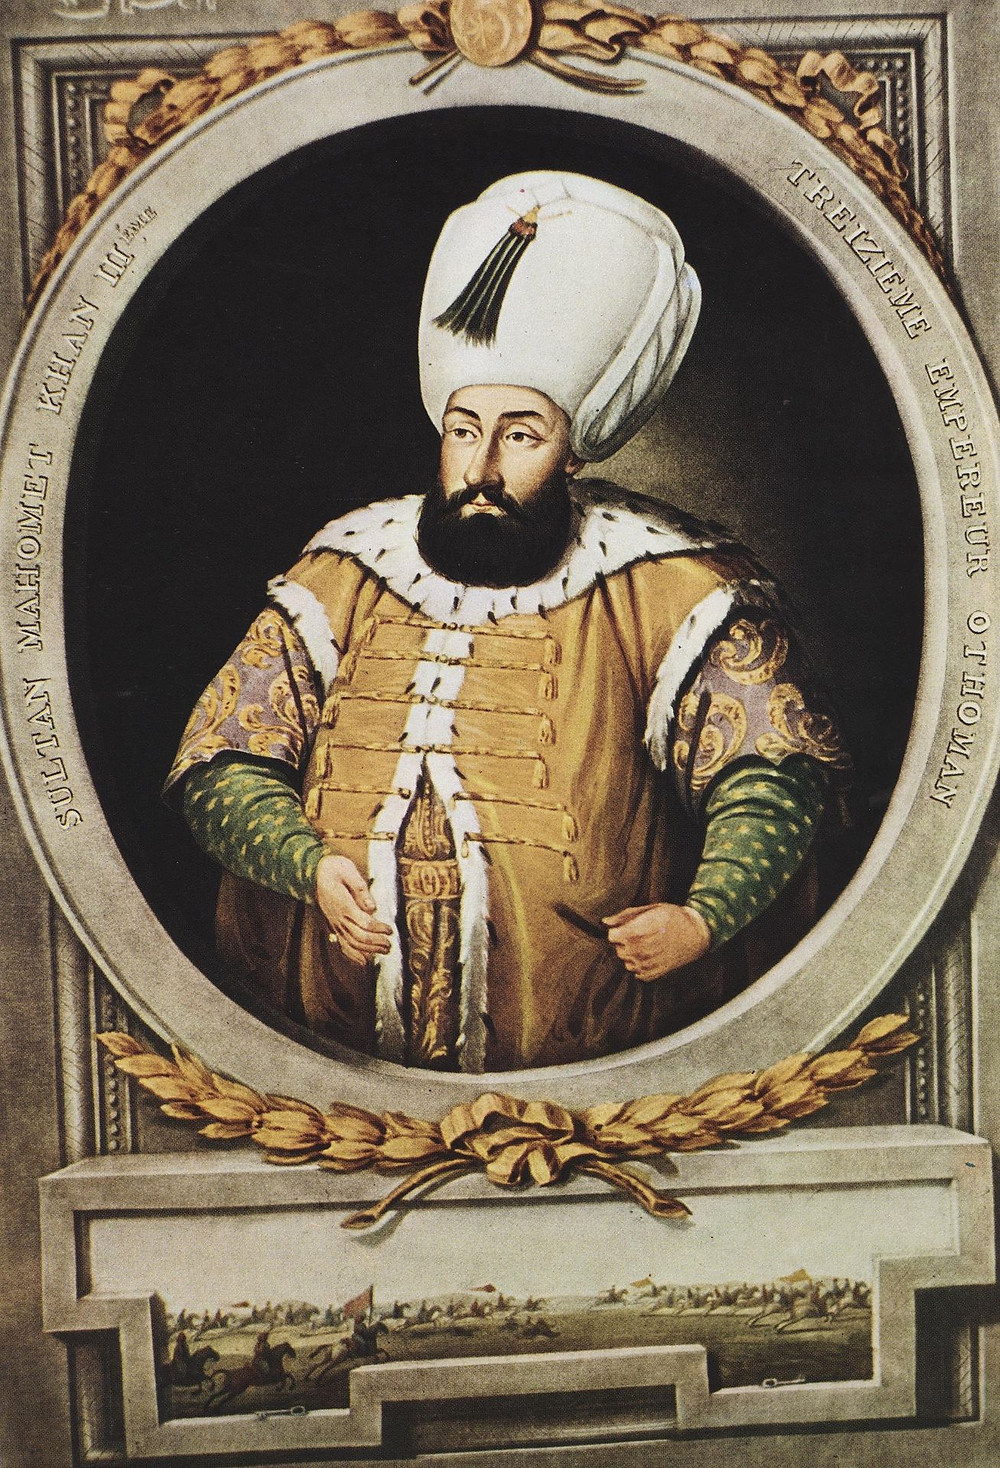 The new Sultan, Mehmed III